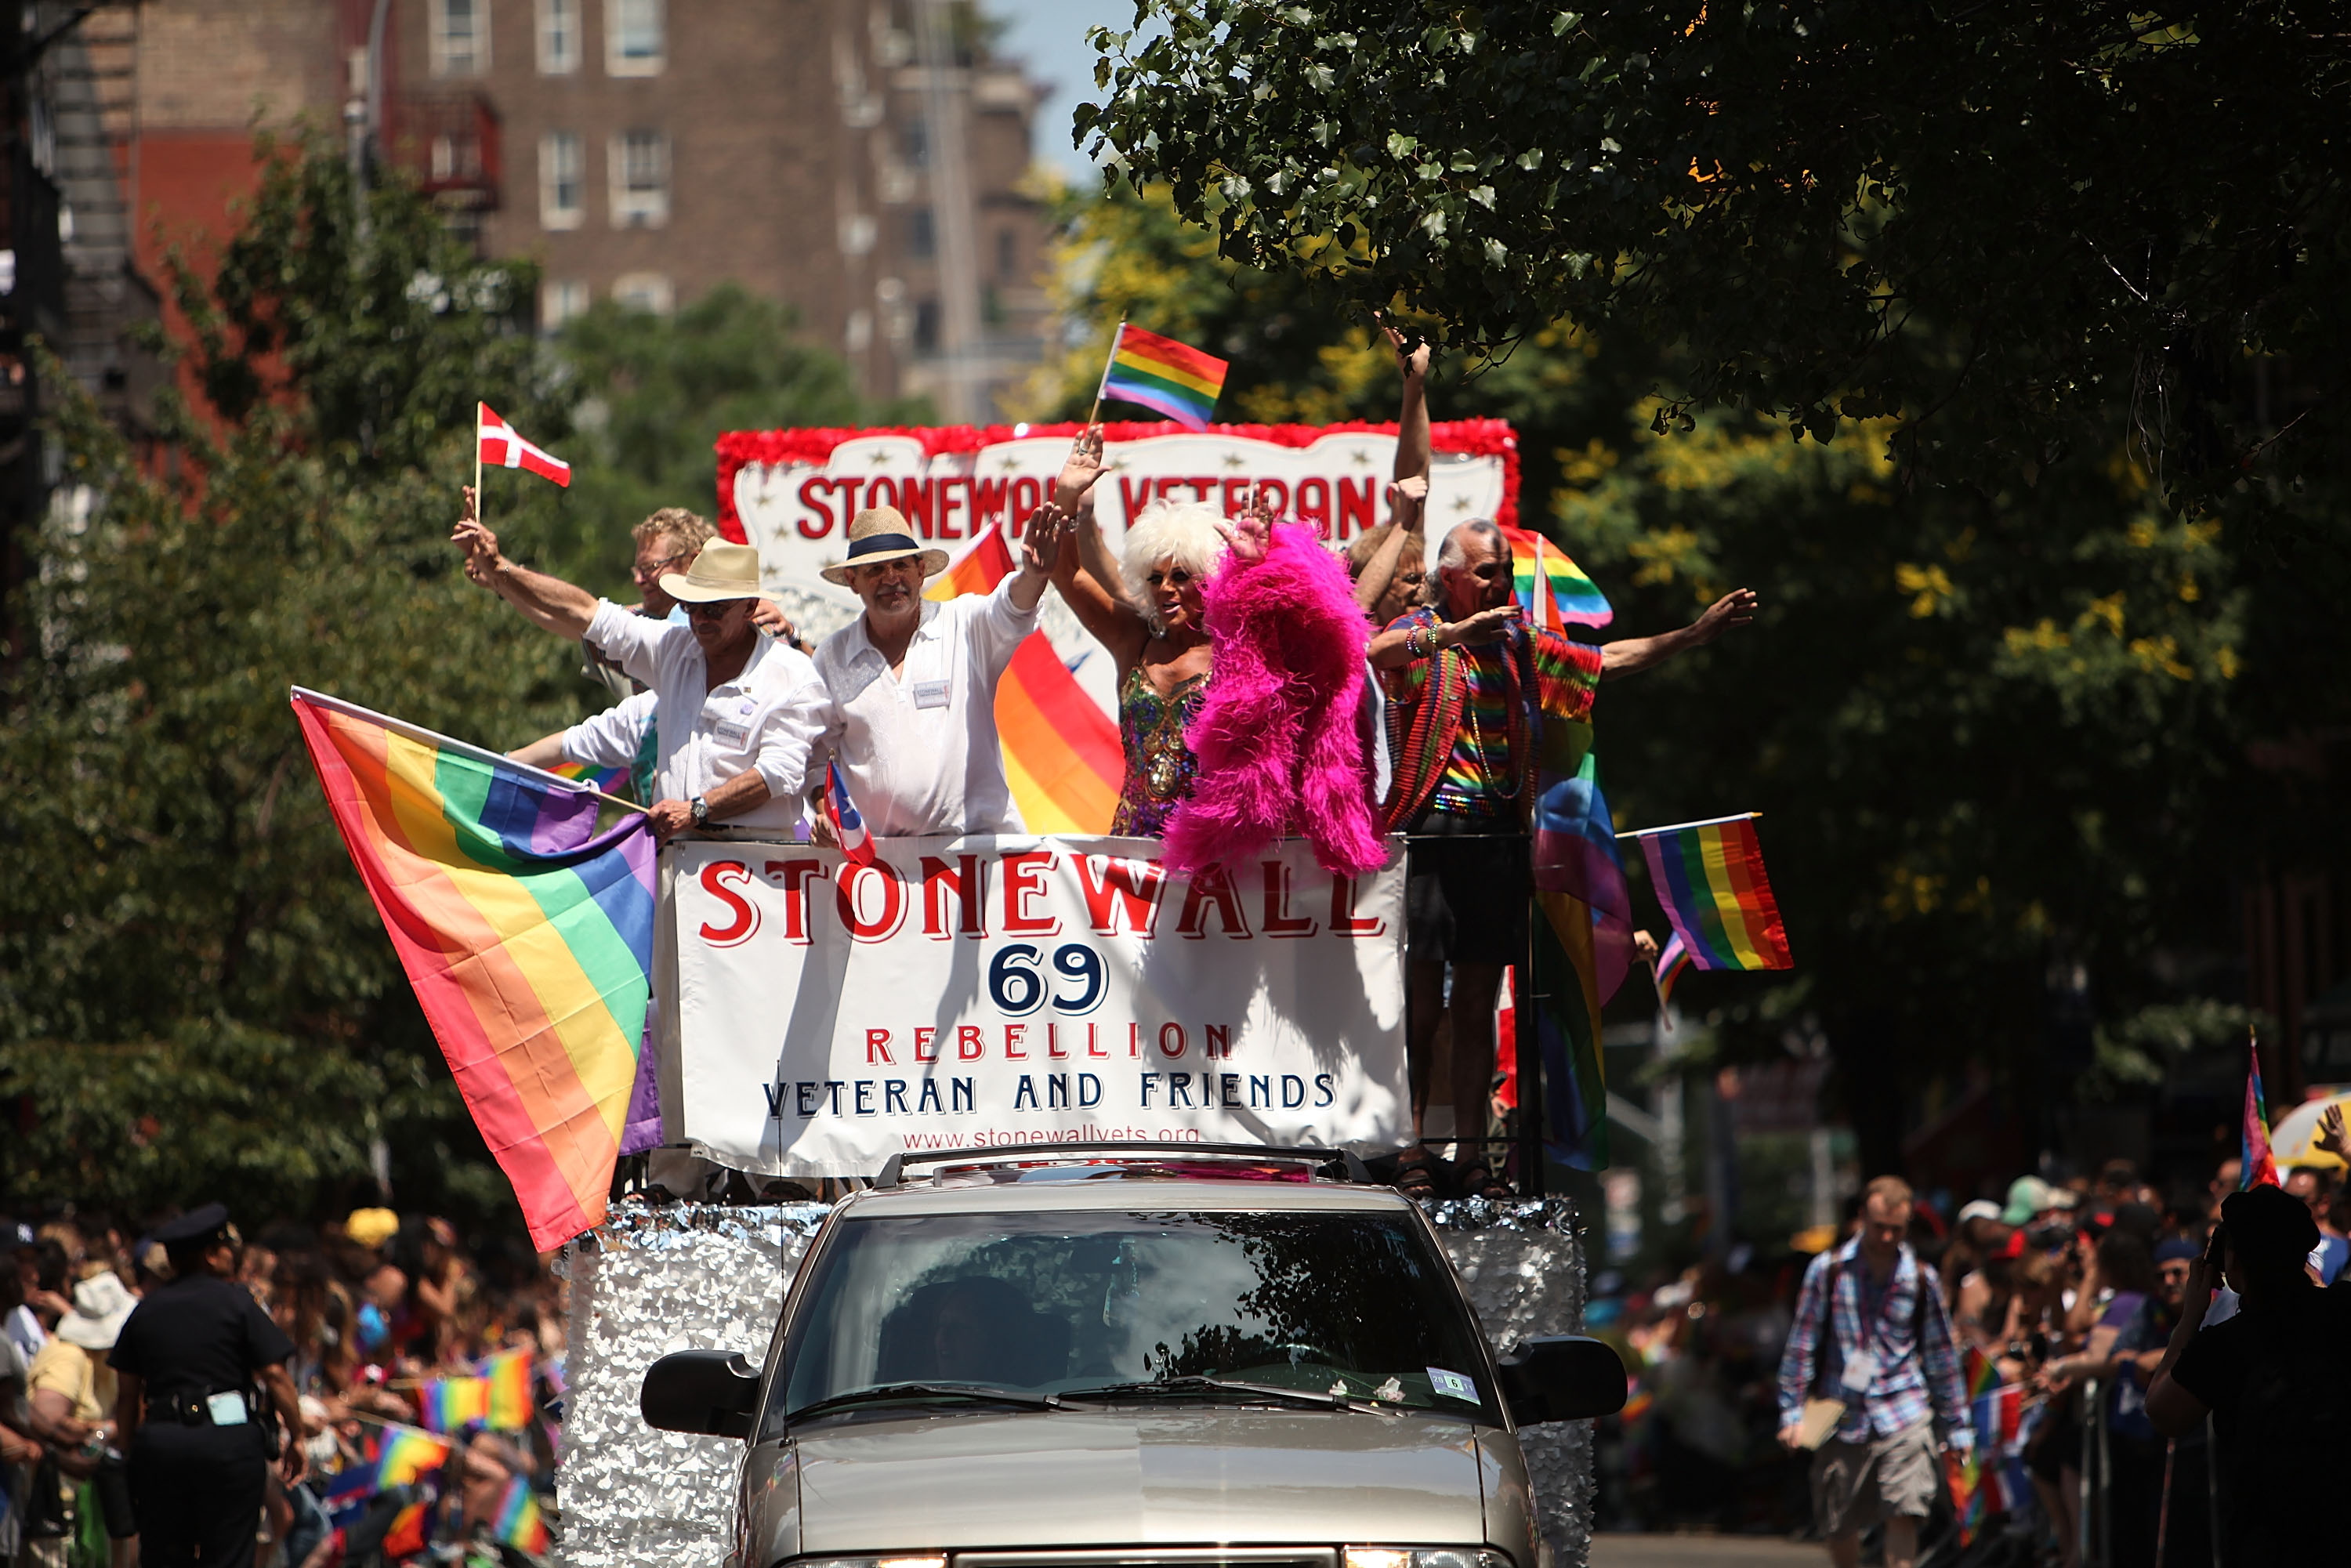 A float commemorates the 40th anniversary of the Stonewall riots, which erupted after a police raid on a gay bar, the Stonewall Inn on Christopher St., in 1969.